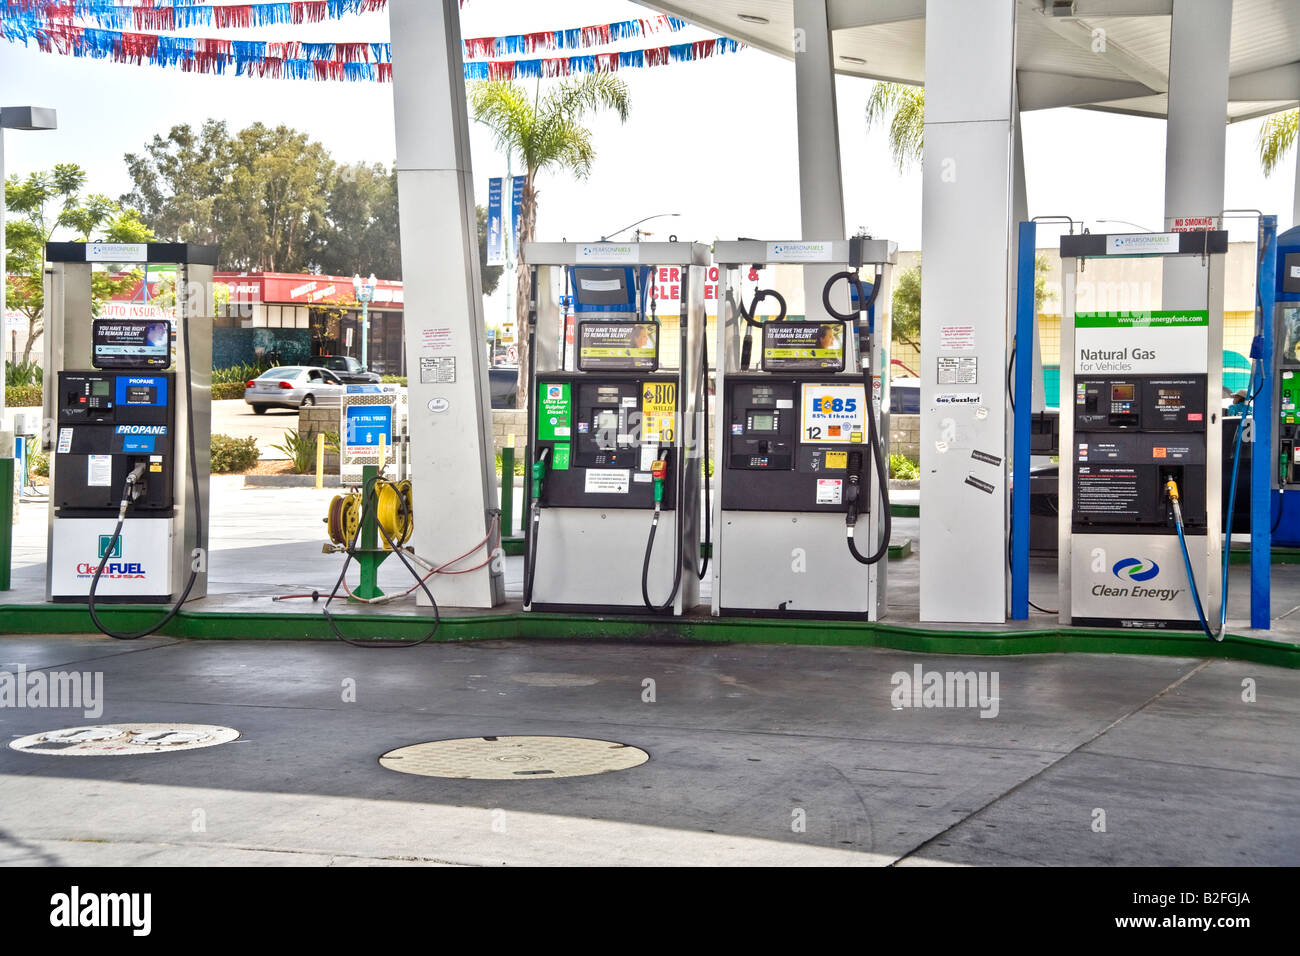 Pumps for propane biodiesel ethanol and natural gas at a San Diego filling station offer an alternative fuel for - Stock Image